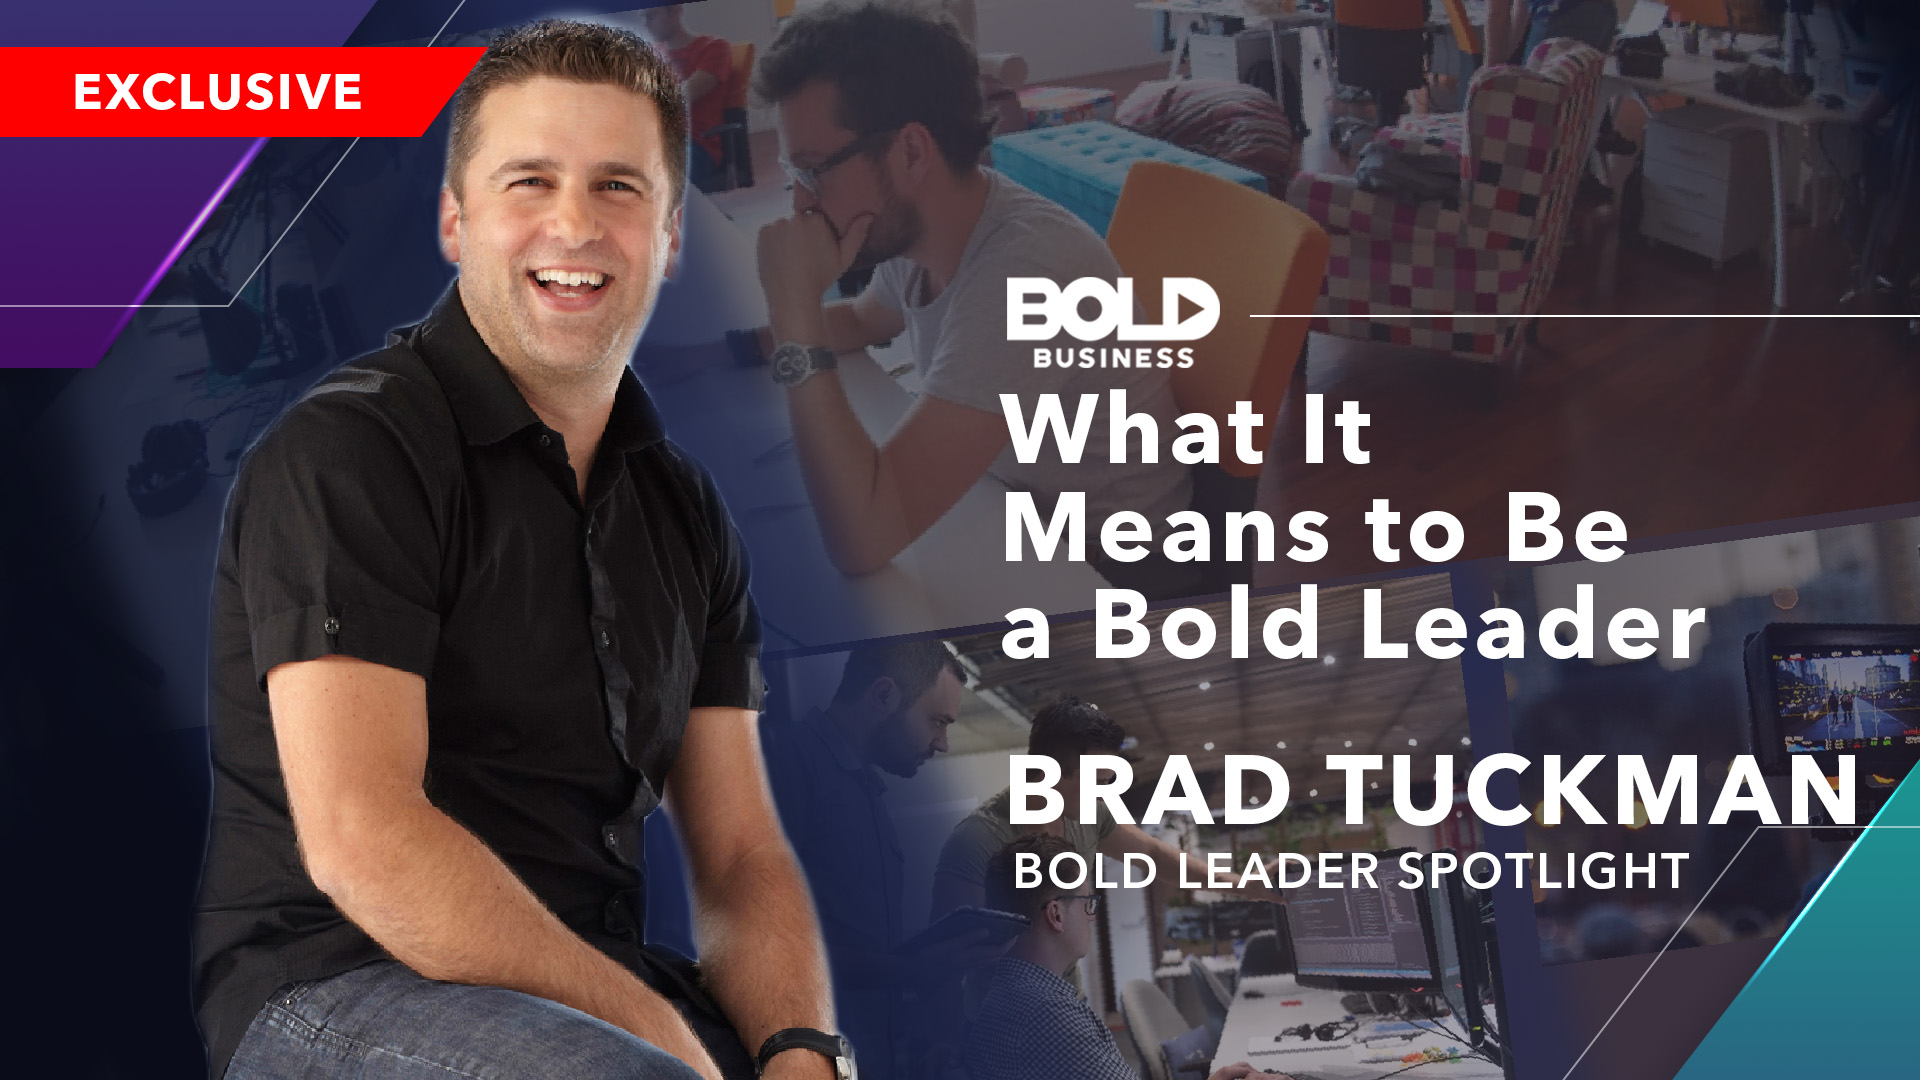 banner image of Brad Tuckman of what it means to be a bold leader